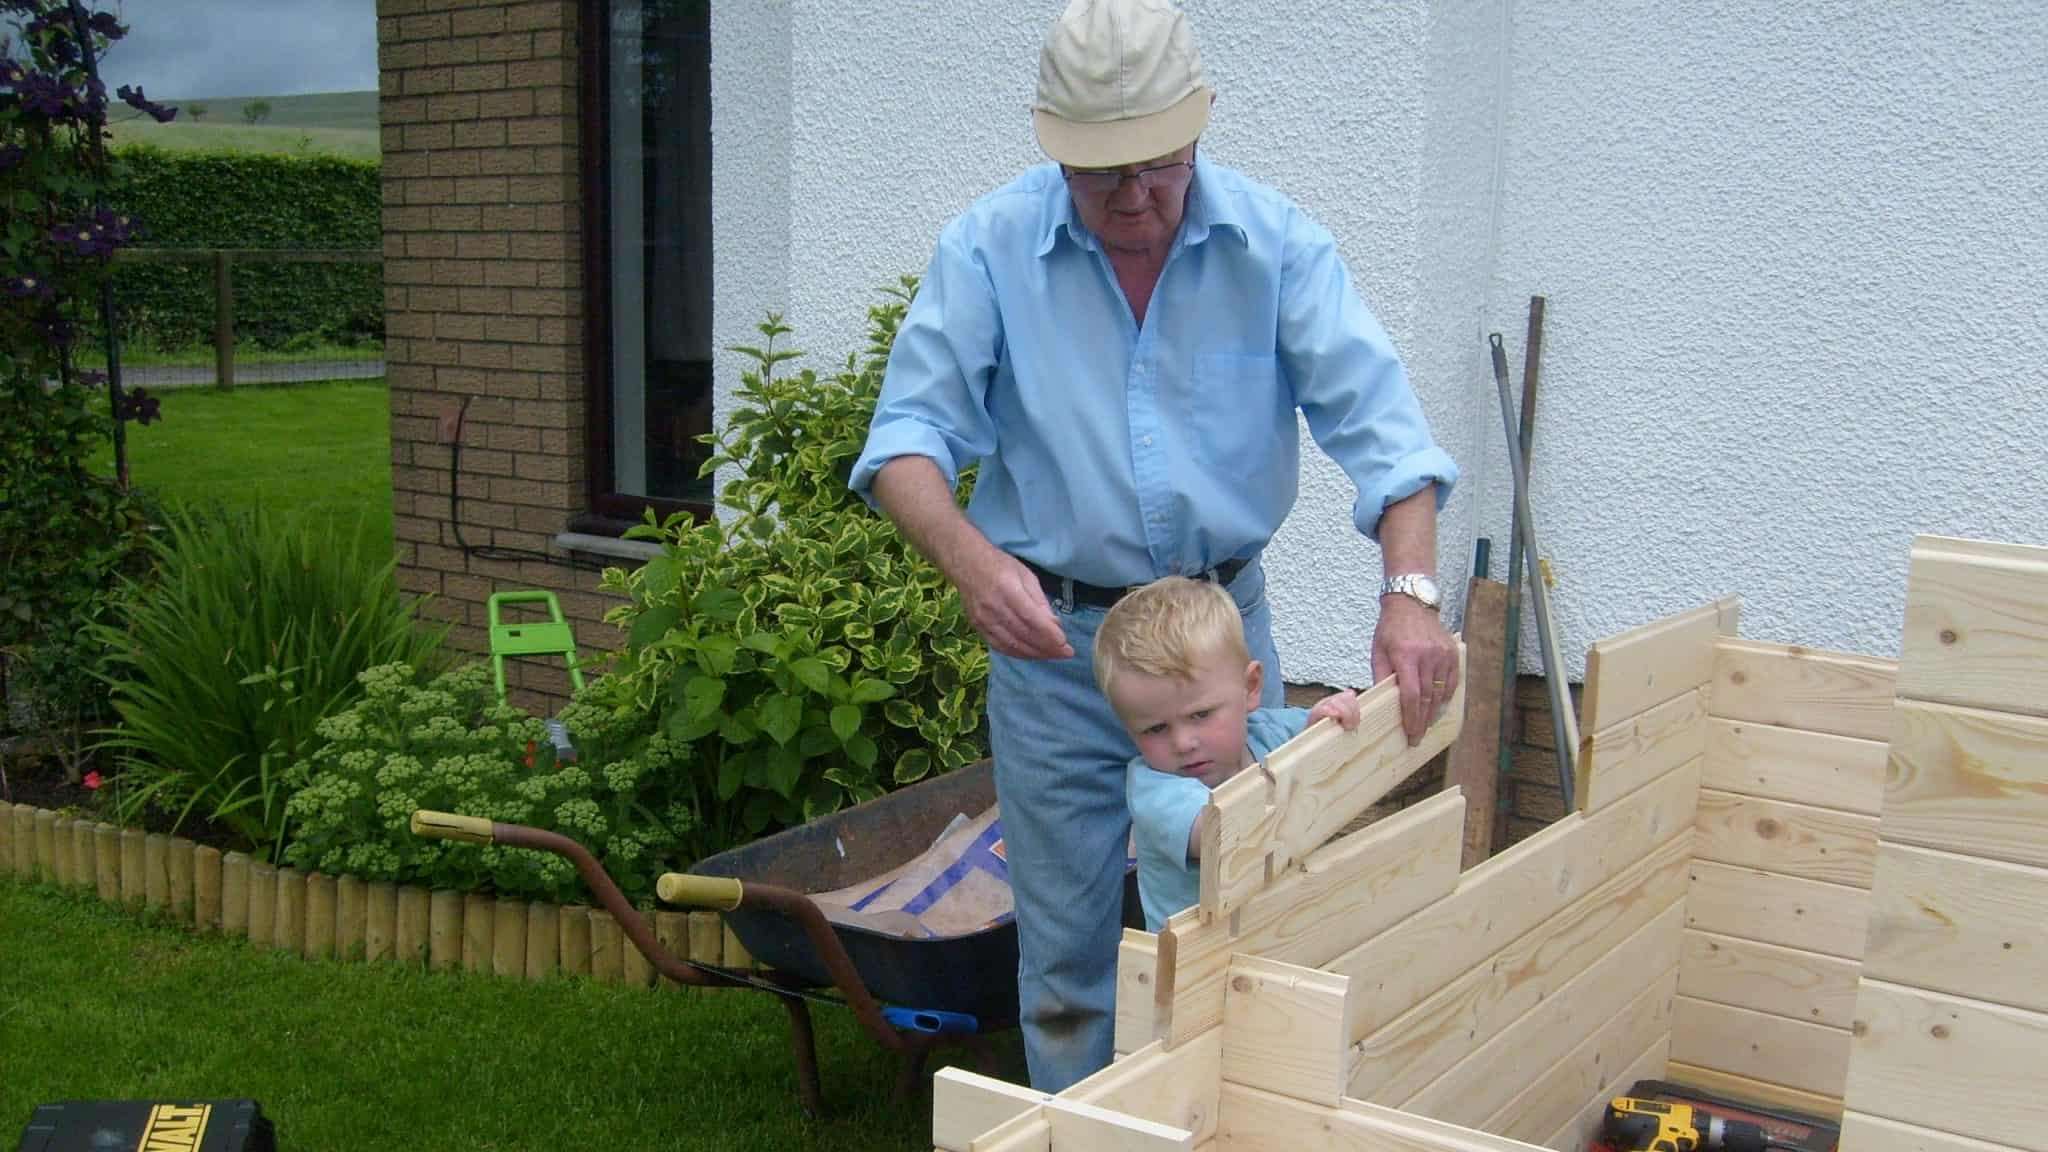 older man in a blue shirt and cap helping a young blonde child build a timber shed wall in the garden